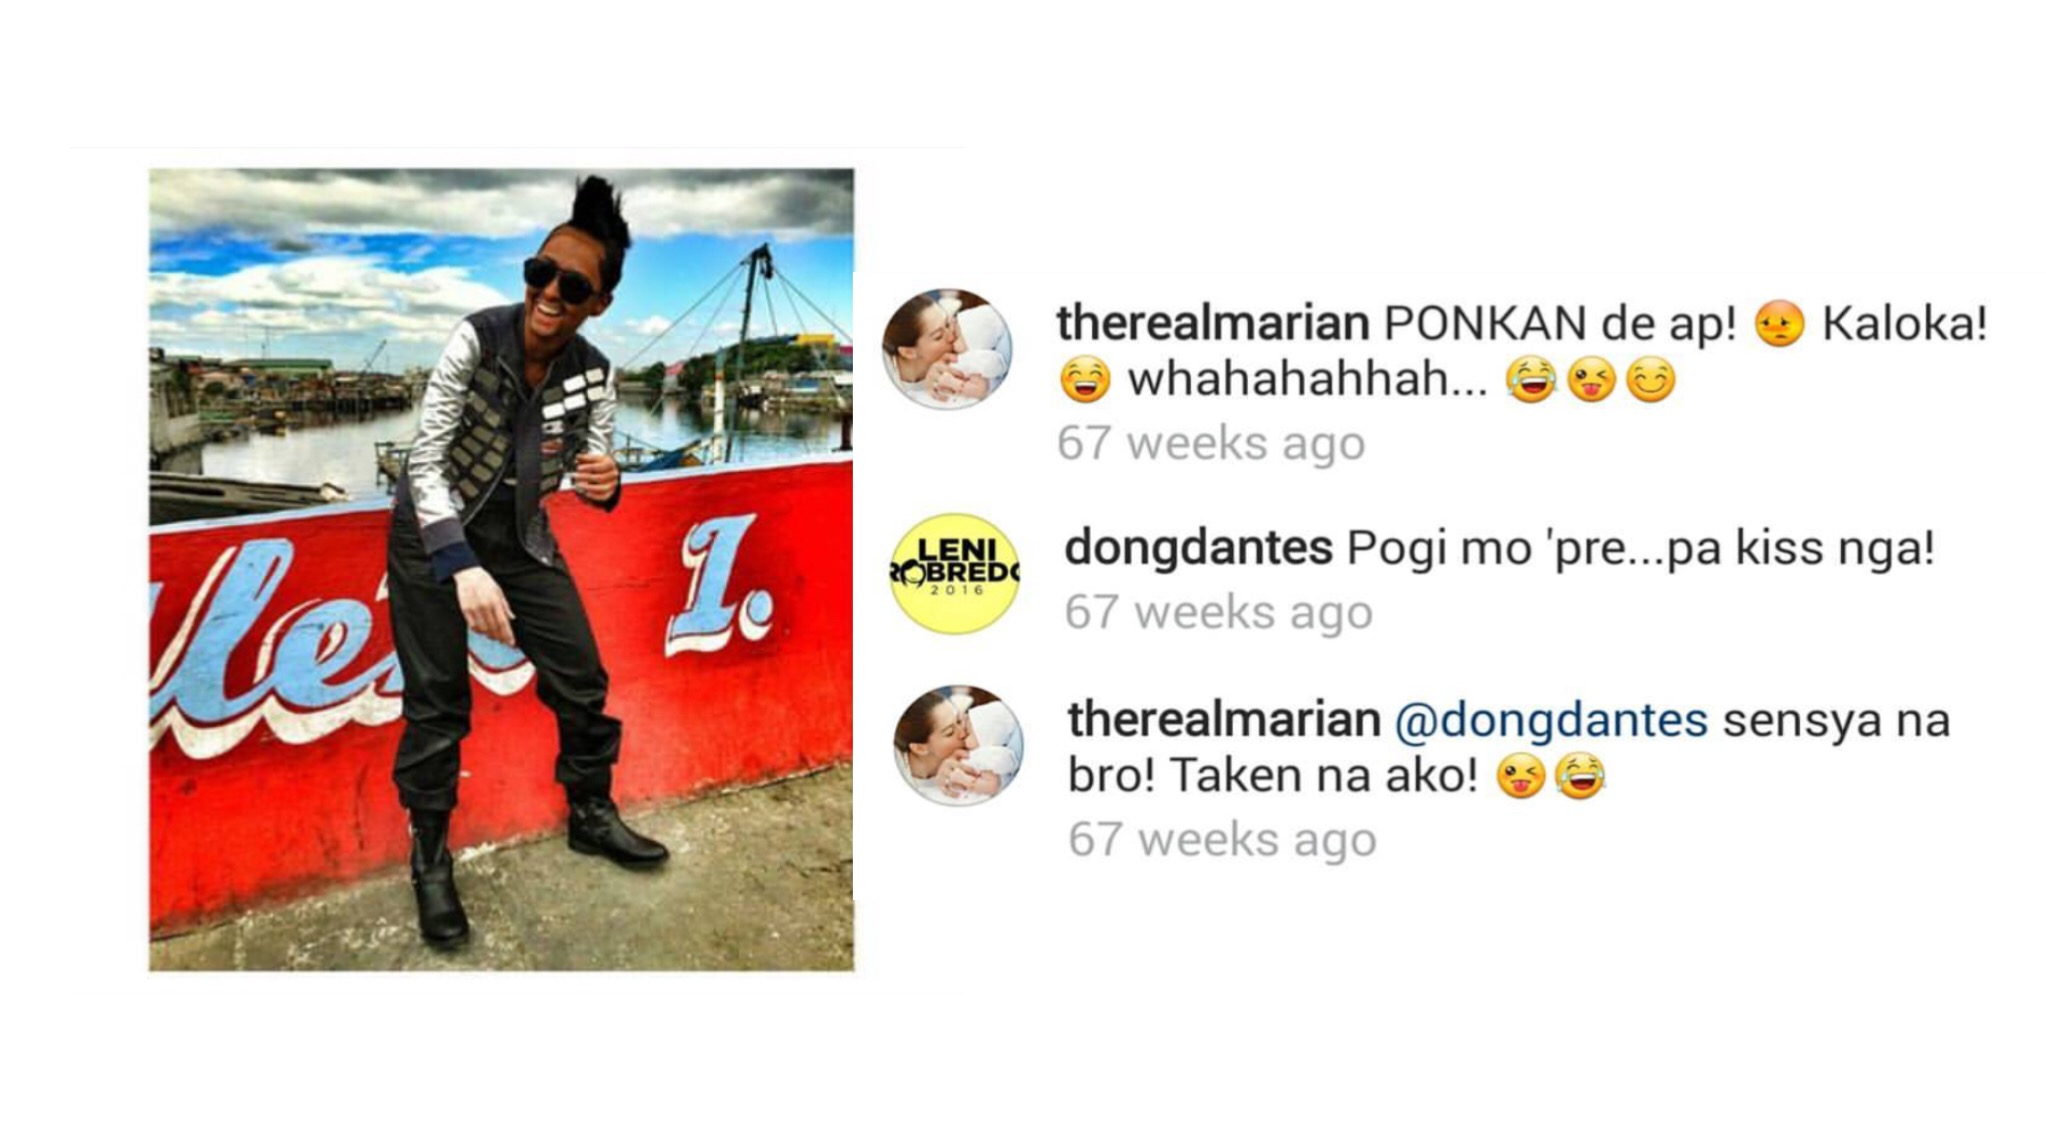 More of DongYan's sweet and funny banters on Instagam!